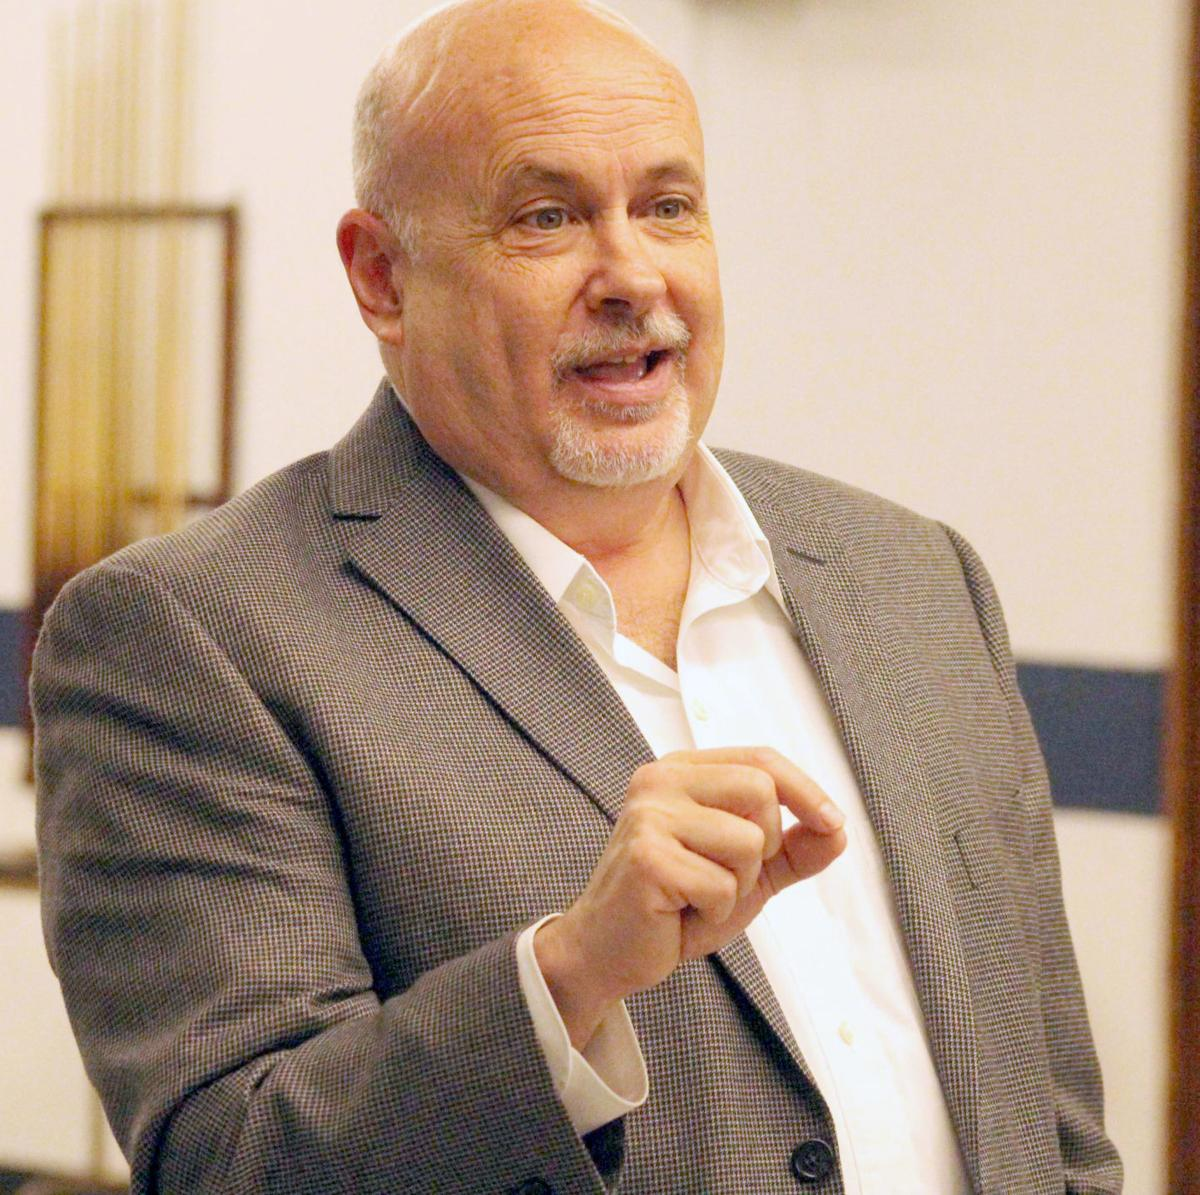 Mark Pocan at town hall